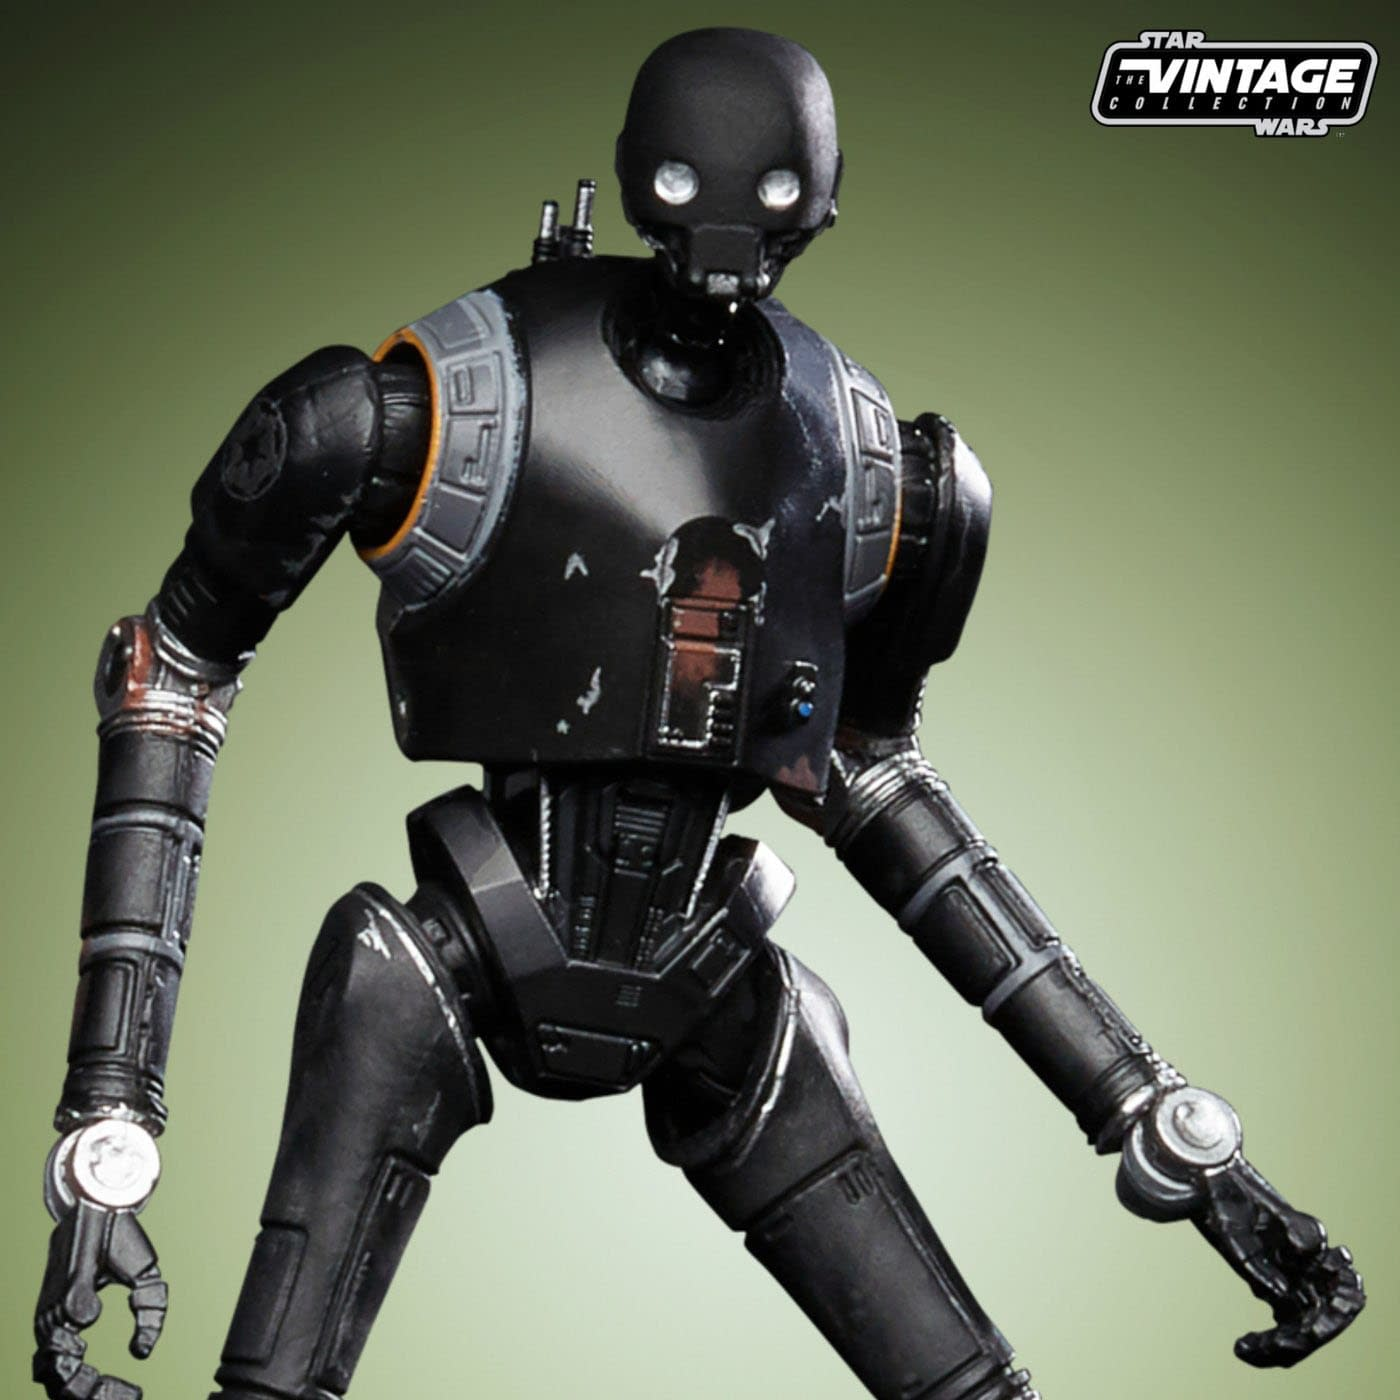 Star-Wars-The-Vintage-Collection-K-2SO-003